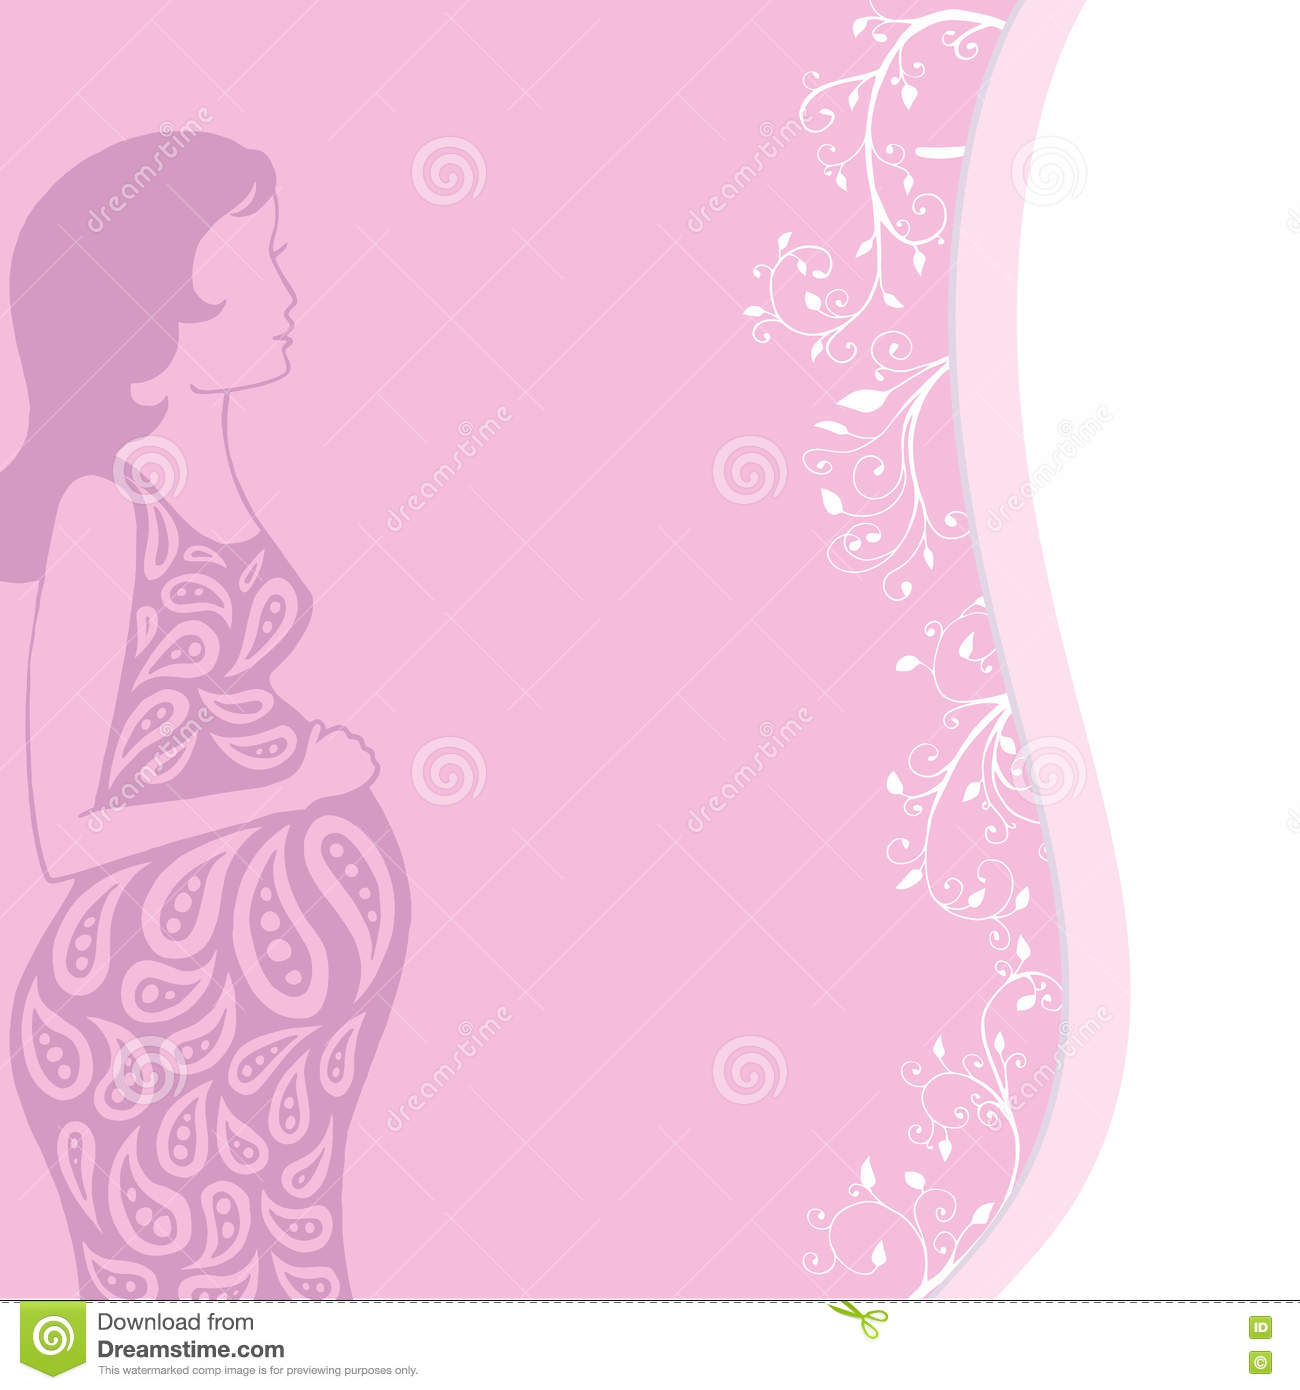 Pregnant woman vector girl on a pink background greeting card download pregnant woman vector girl on a pink background greeting card greetings postcard m4hsunfo